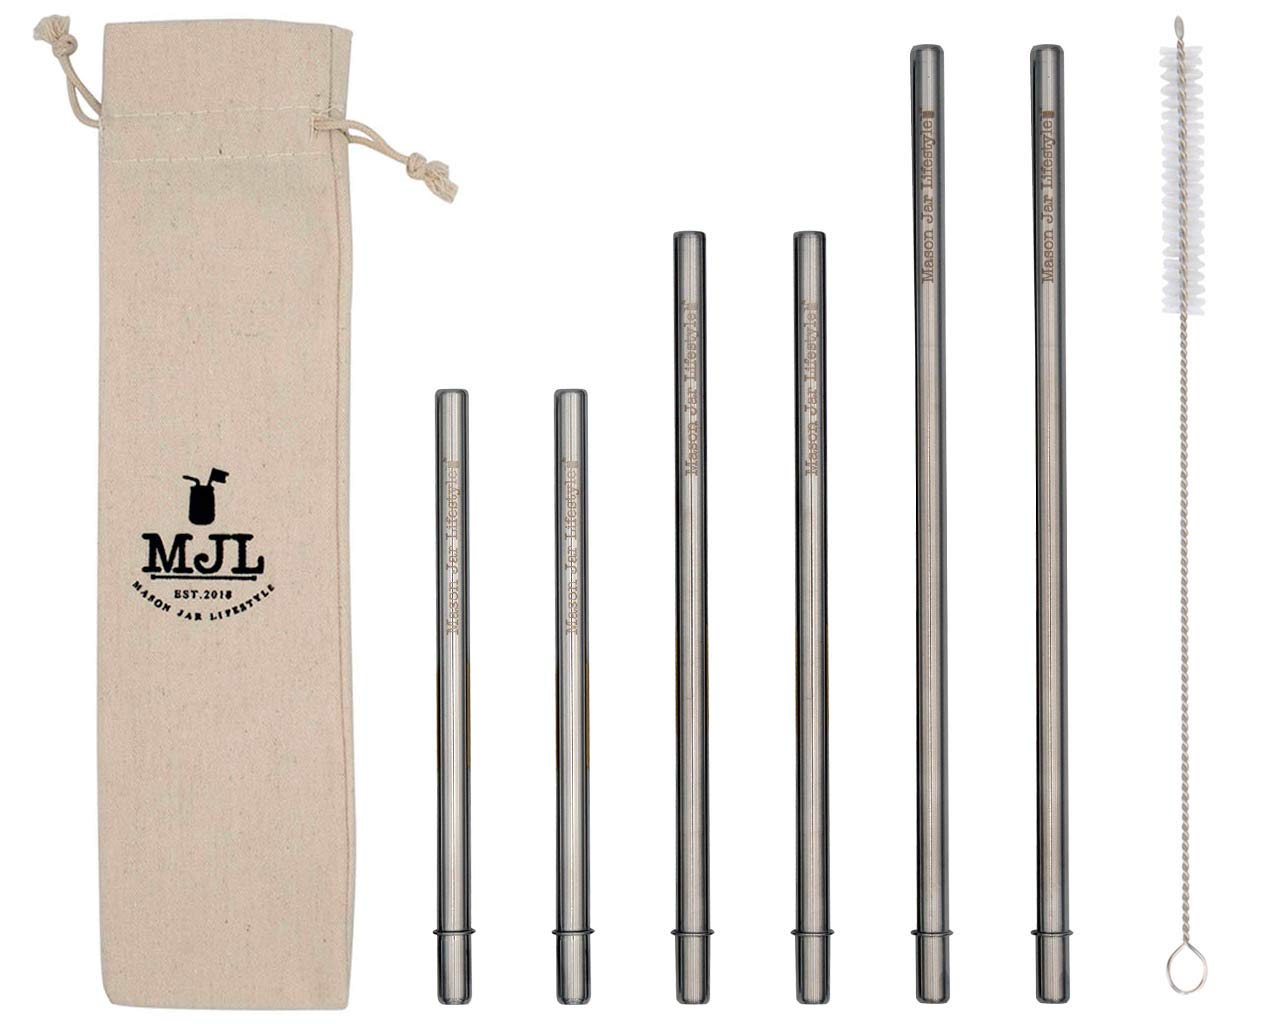 Combo Pack Safer Rounded End Stainless Steel Metal Straws for Mason Jars (6 Pack + Cleaning Brush + Bag)